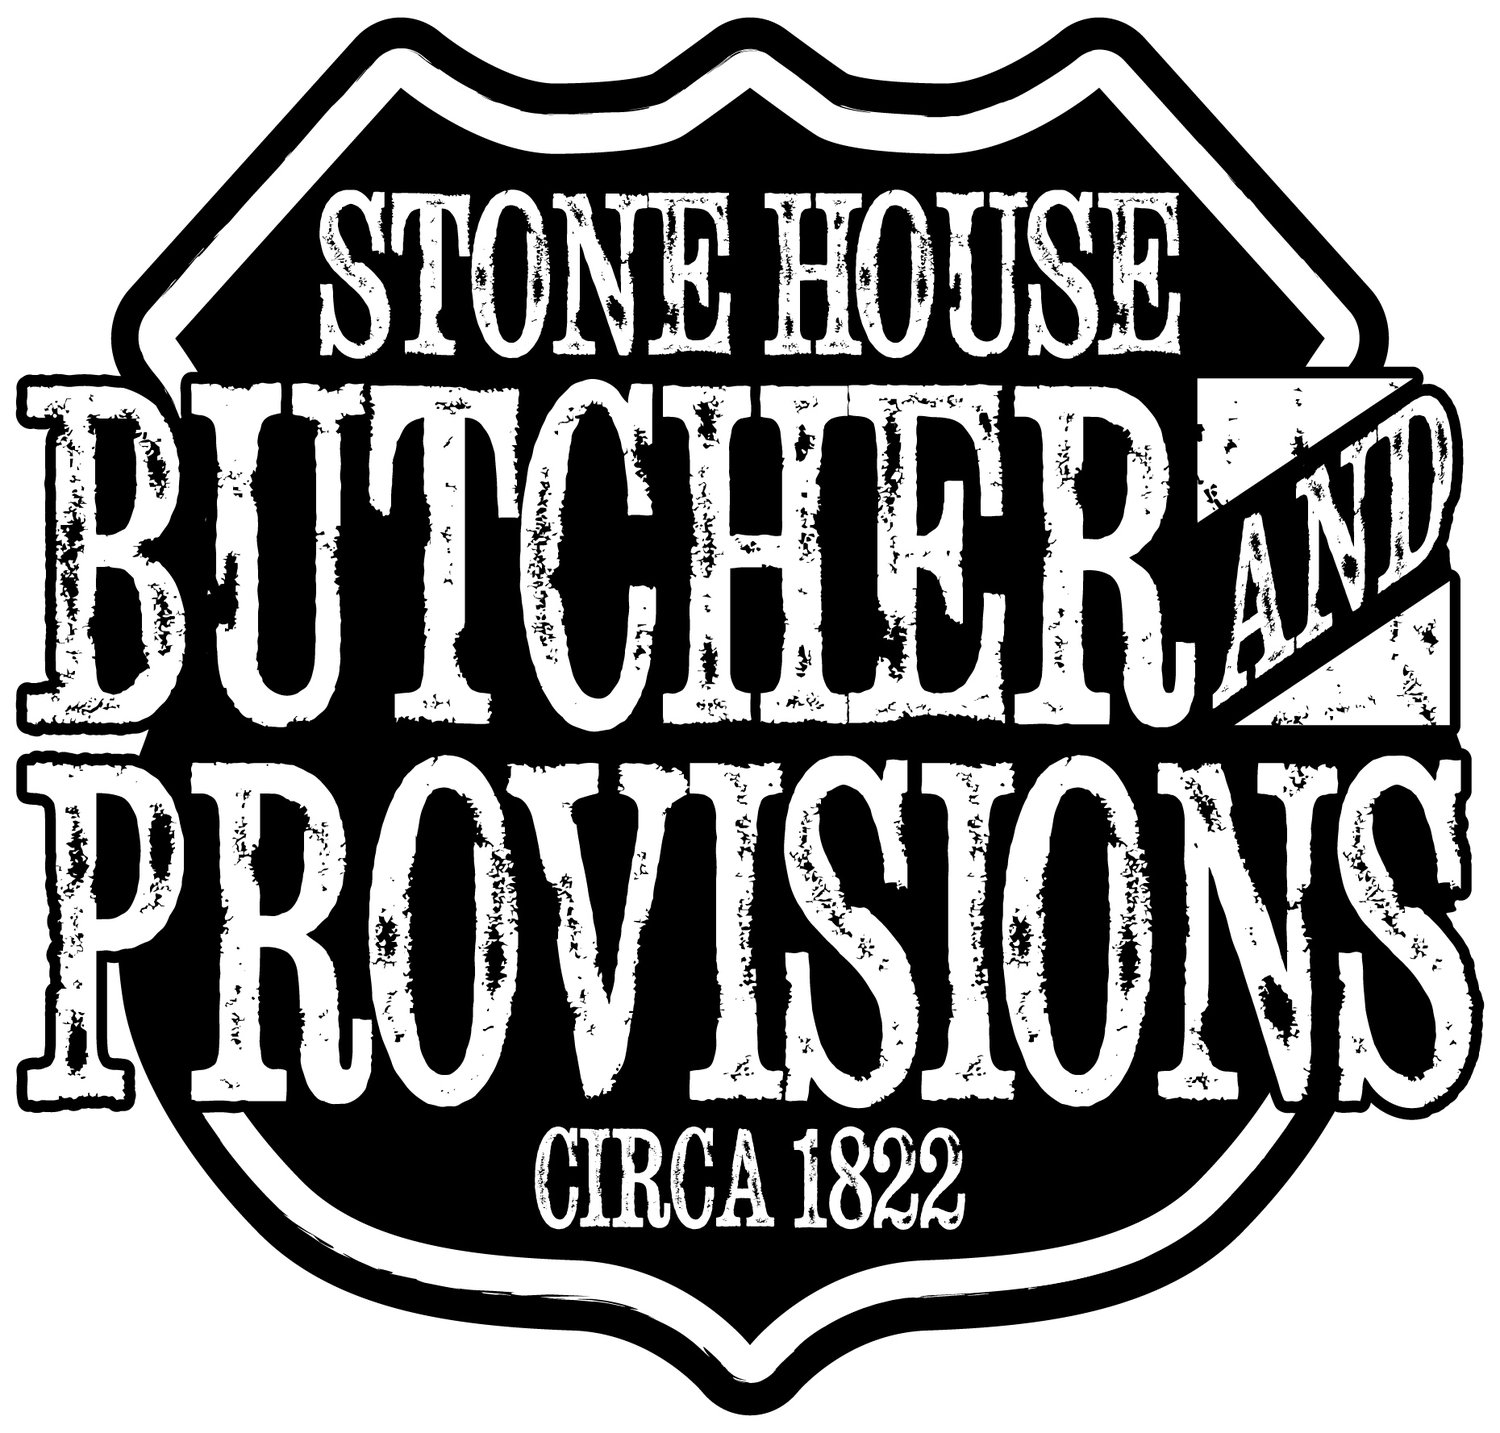 Stone House Butcher & Provisions